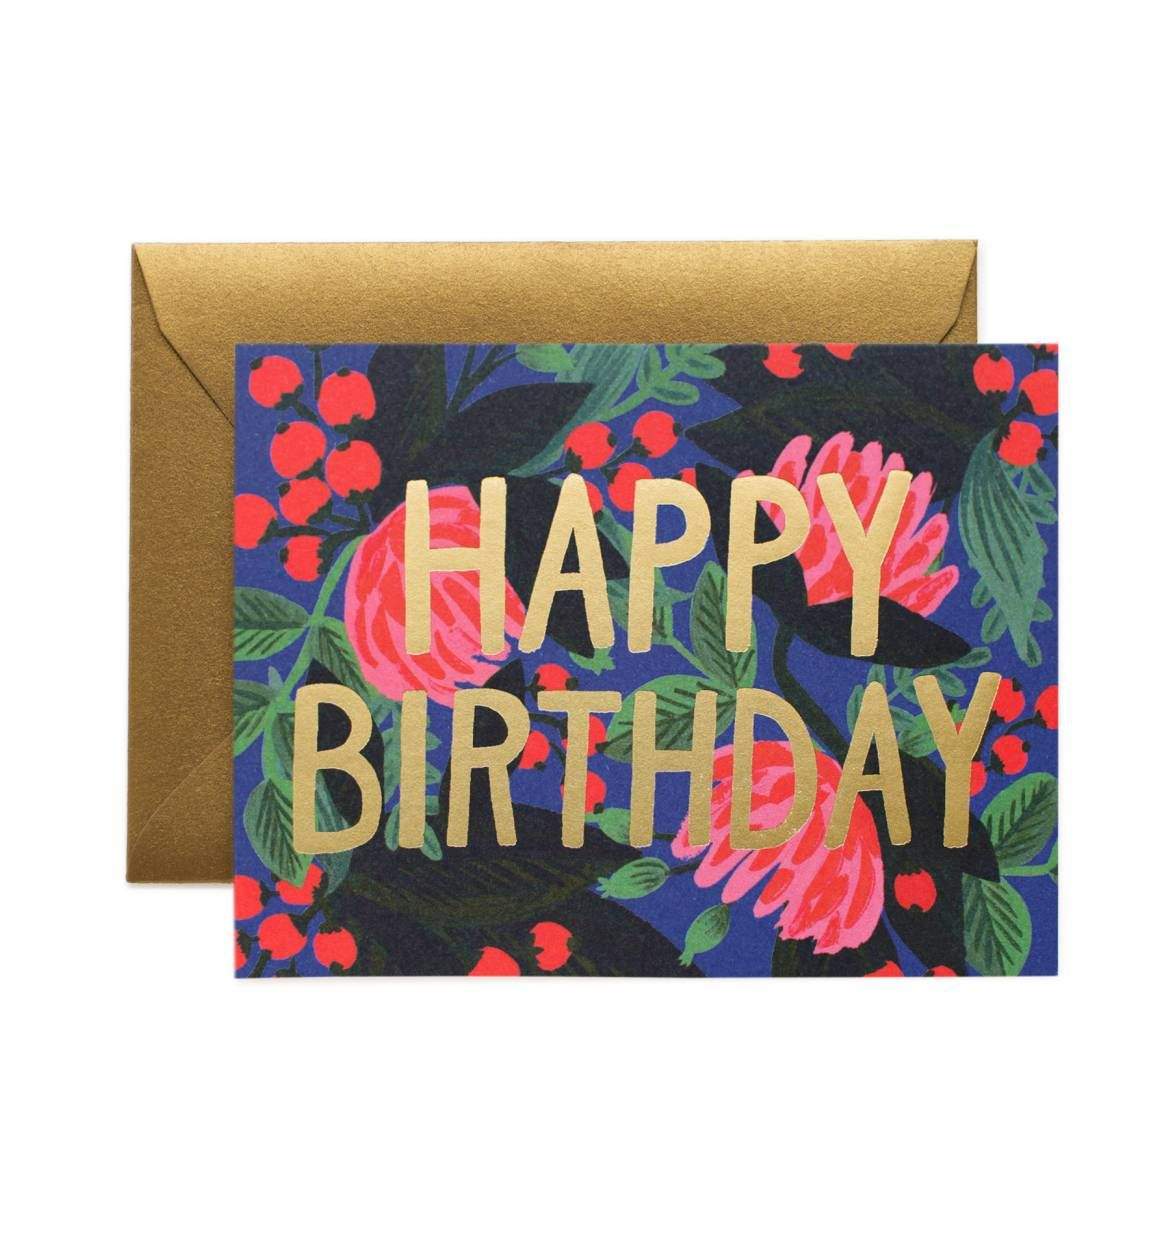 Floral Foil Birthday Available As A Single Folded Card Or Boxed Set